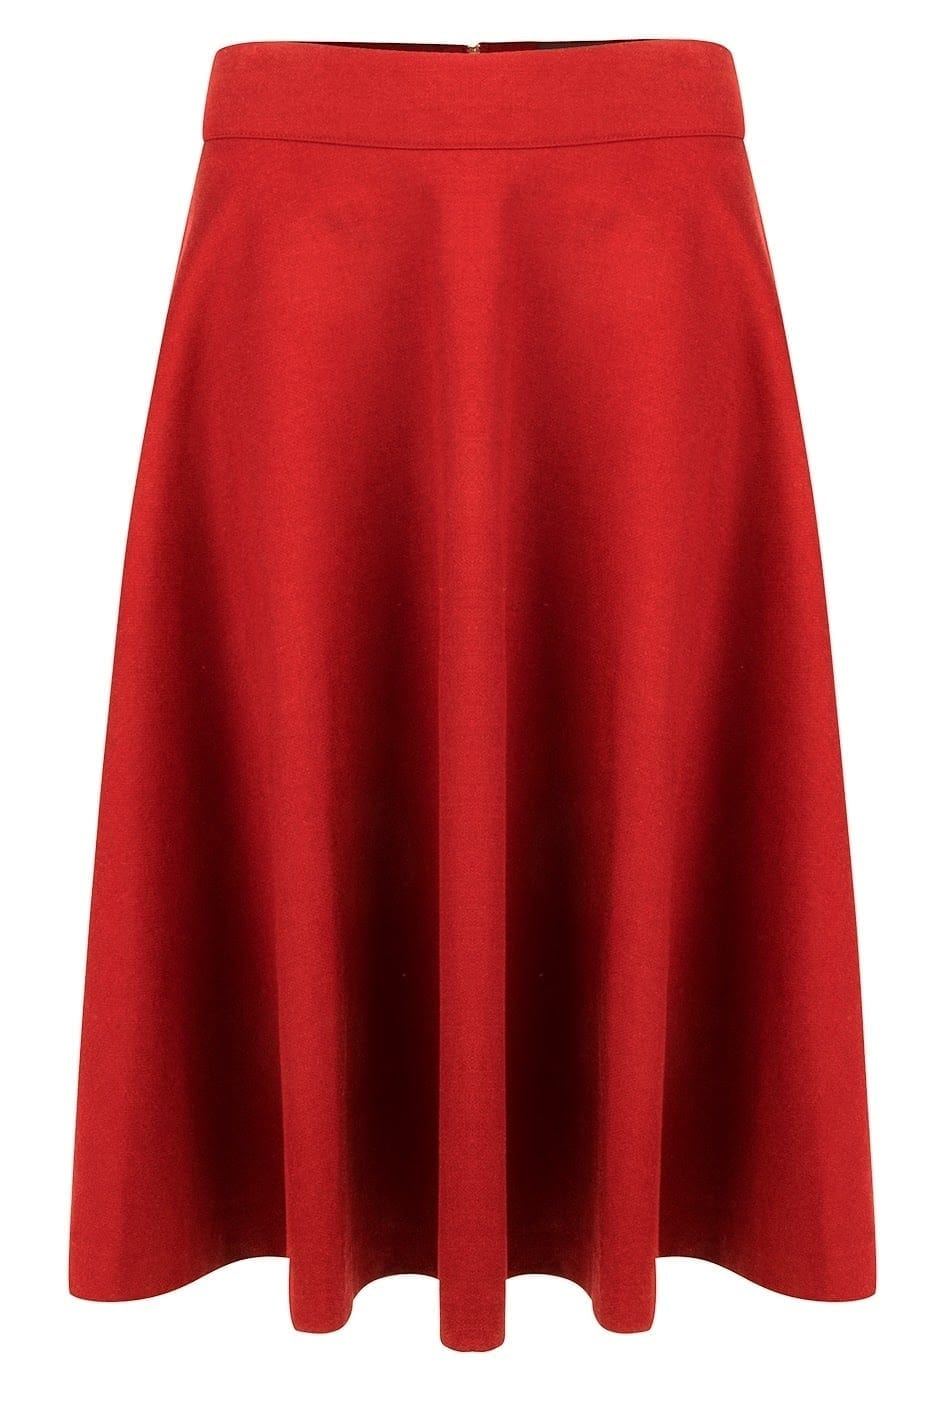 Bannou long  circle skirt from Bannou